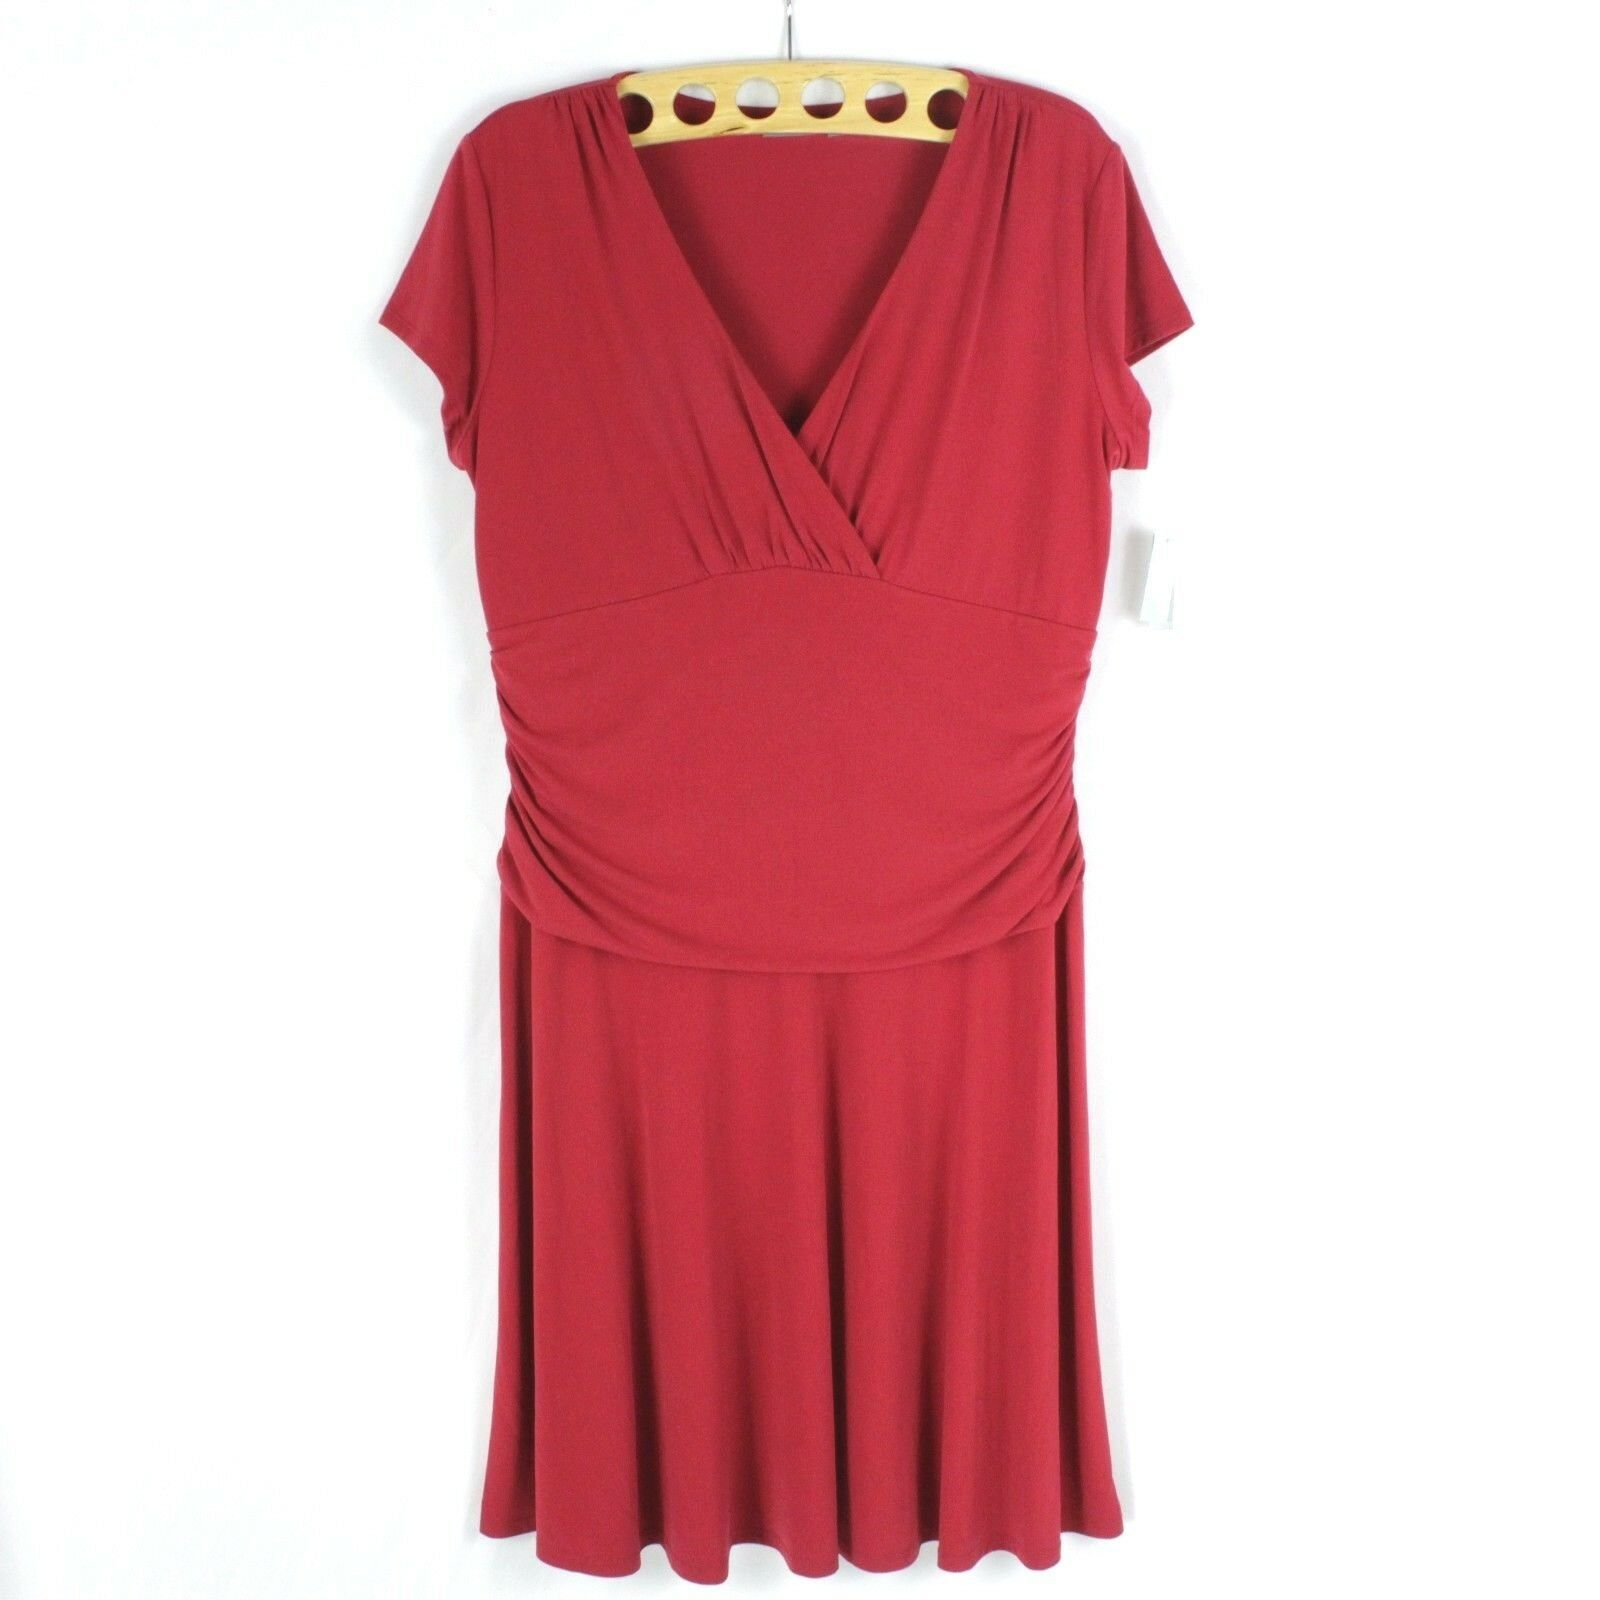 Primary image for NEW Women's Stretch Cocktail Shift Dress Casual Red Vneck Size XL Ruched NWT $50